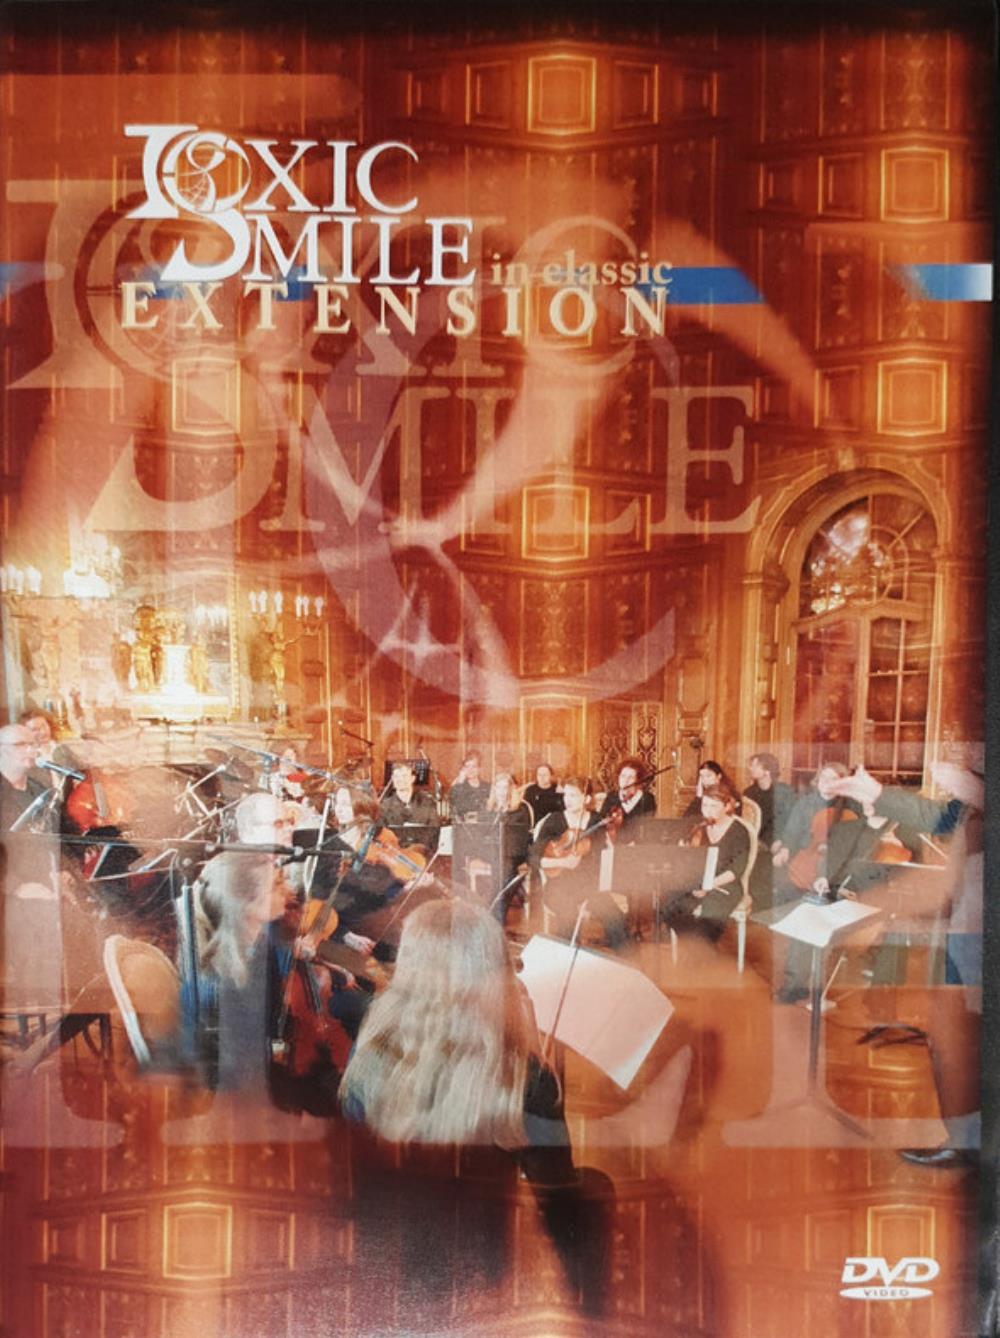 In Classic Extension by TOXIC SMILE album cover